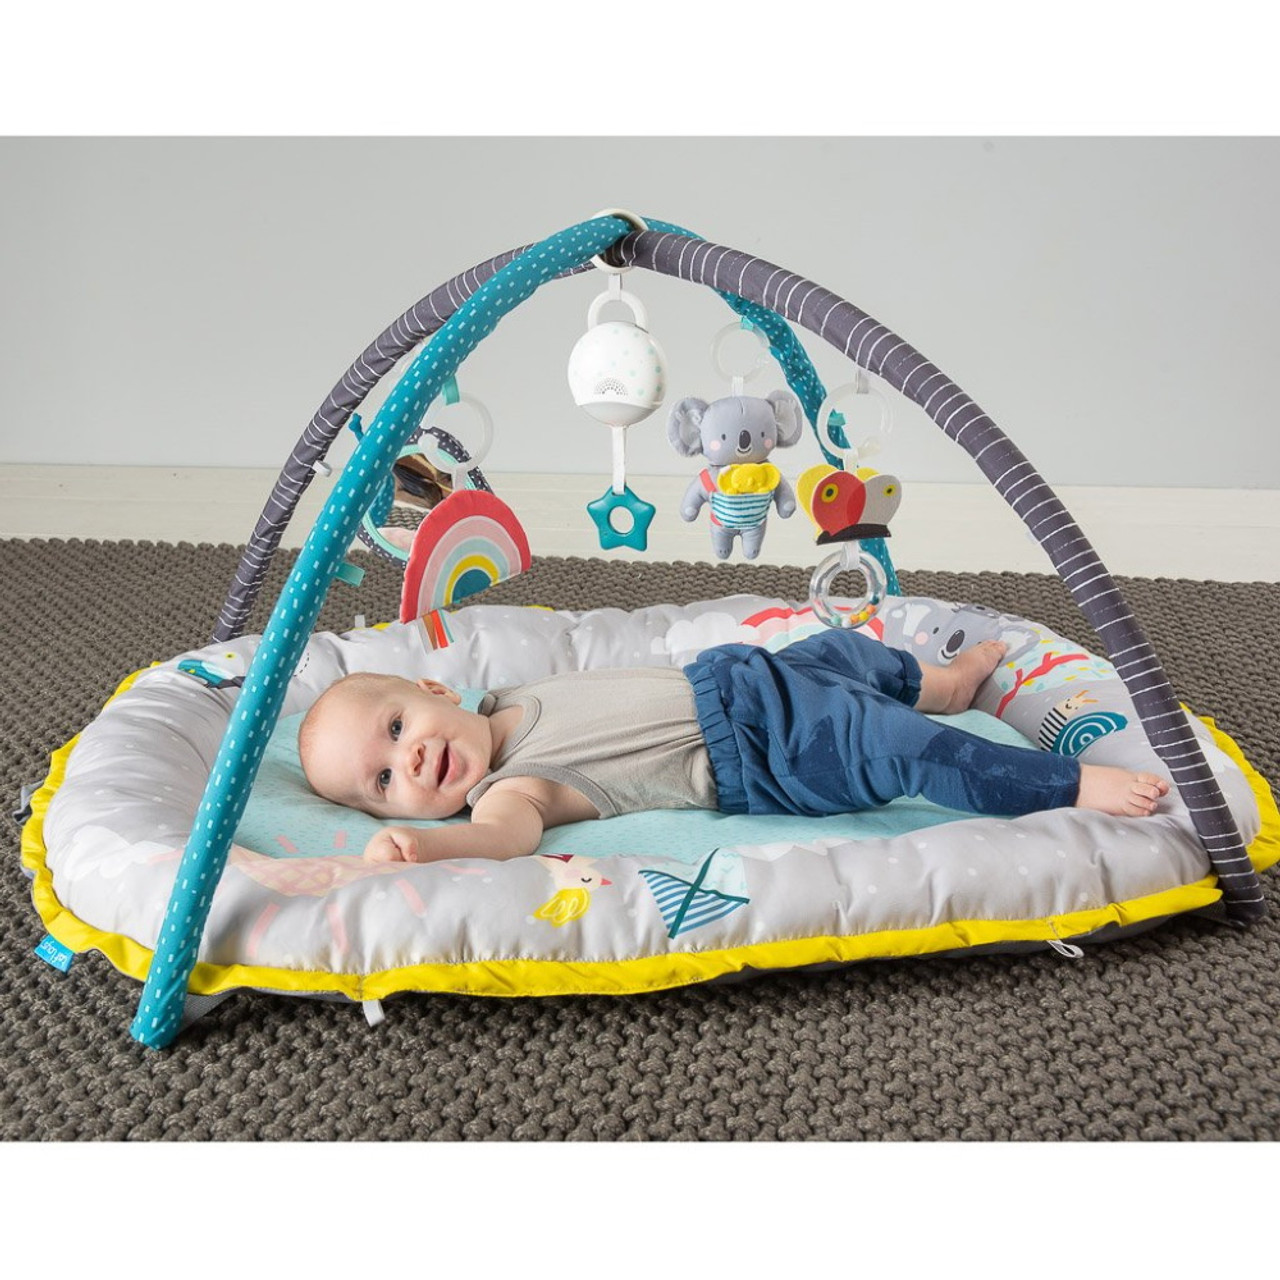 Your baby will have tons of fun with TAF Toys Koala Musical Cosy Gym when listing to the different melodies or relaxing to the shush sound with the lovely My musical mini moon.